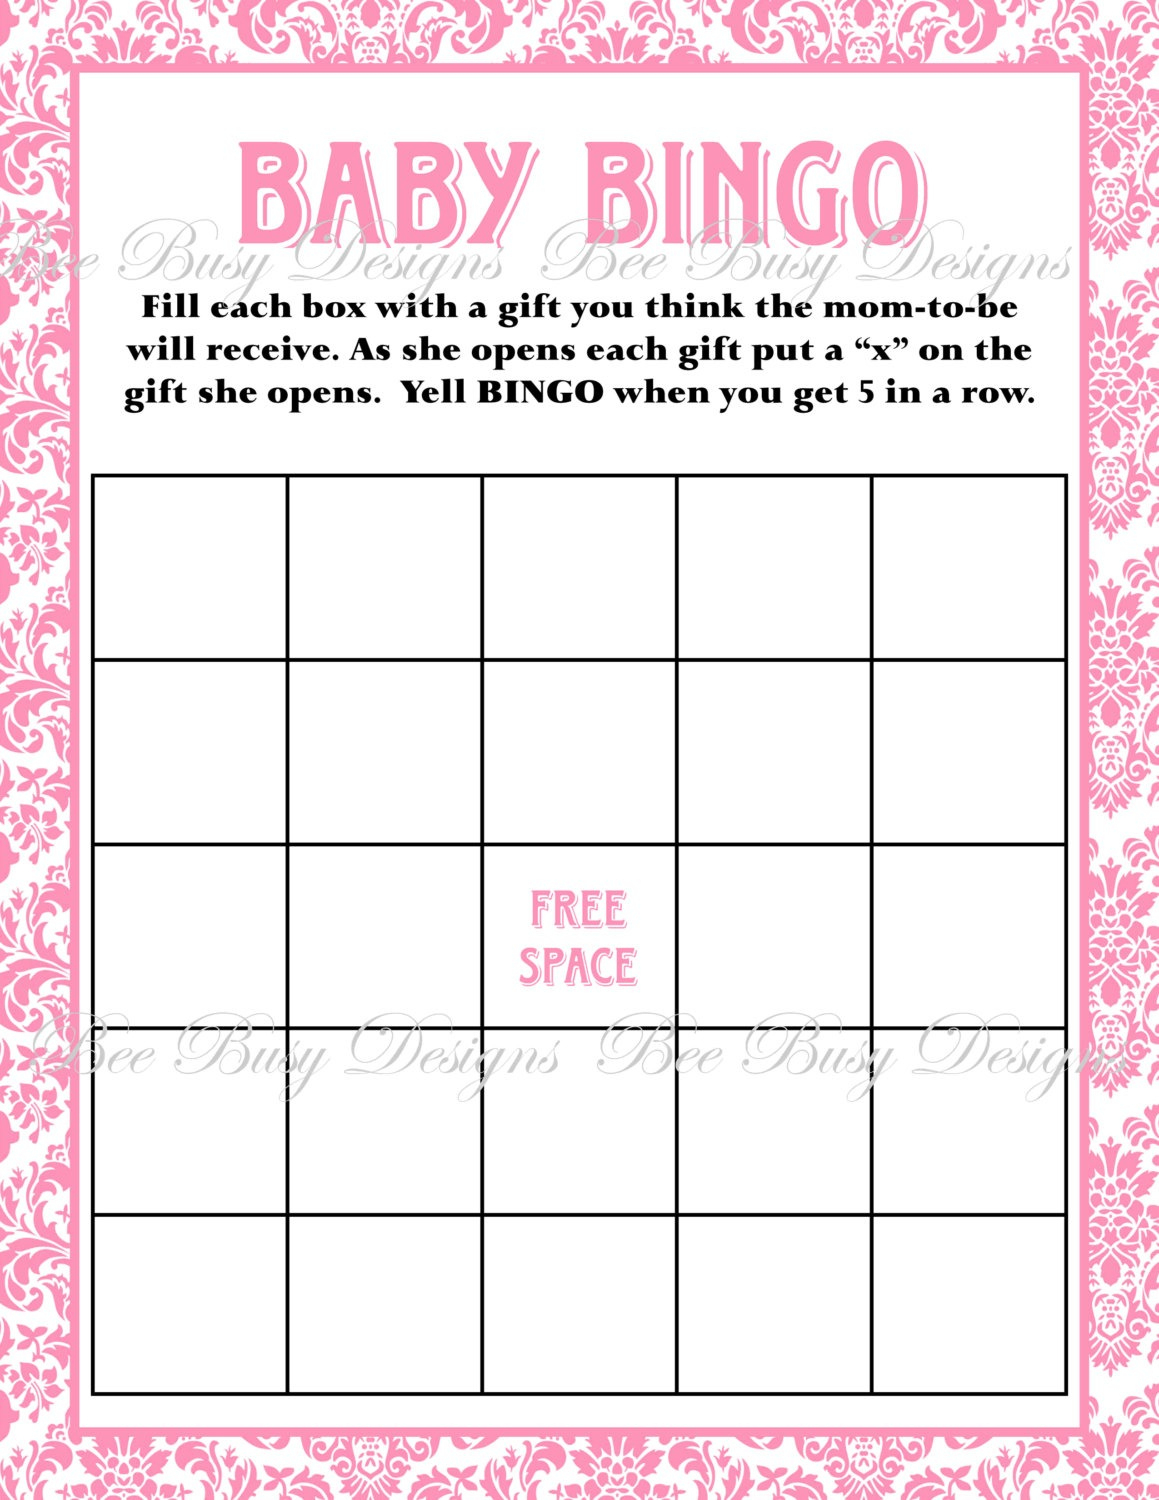 Printable Pink Damask Baby Shower Bingo Game | Bee Busy Designs - Free Printable Baby Shower Bingo